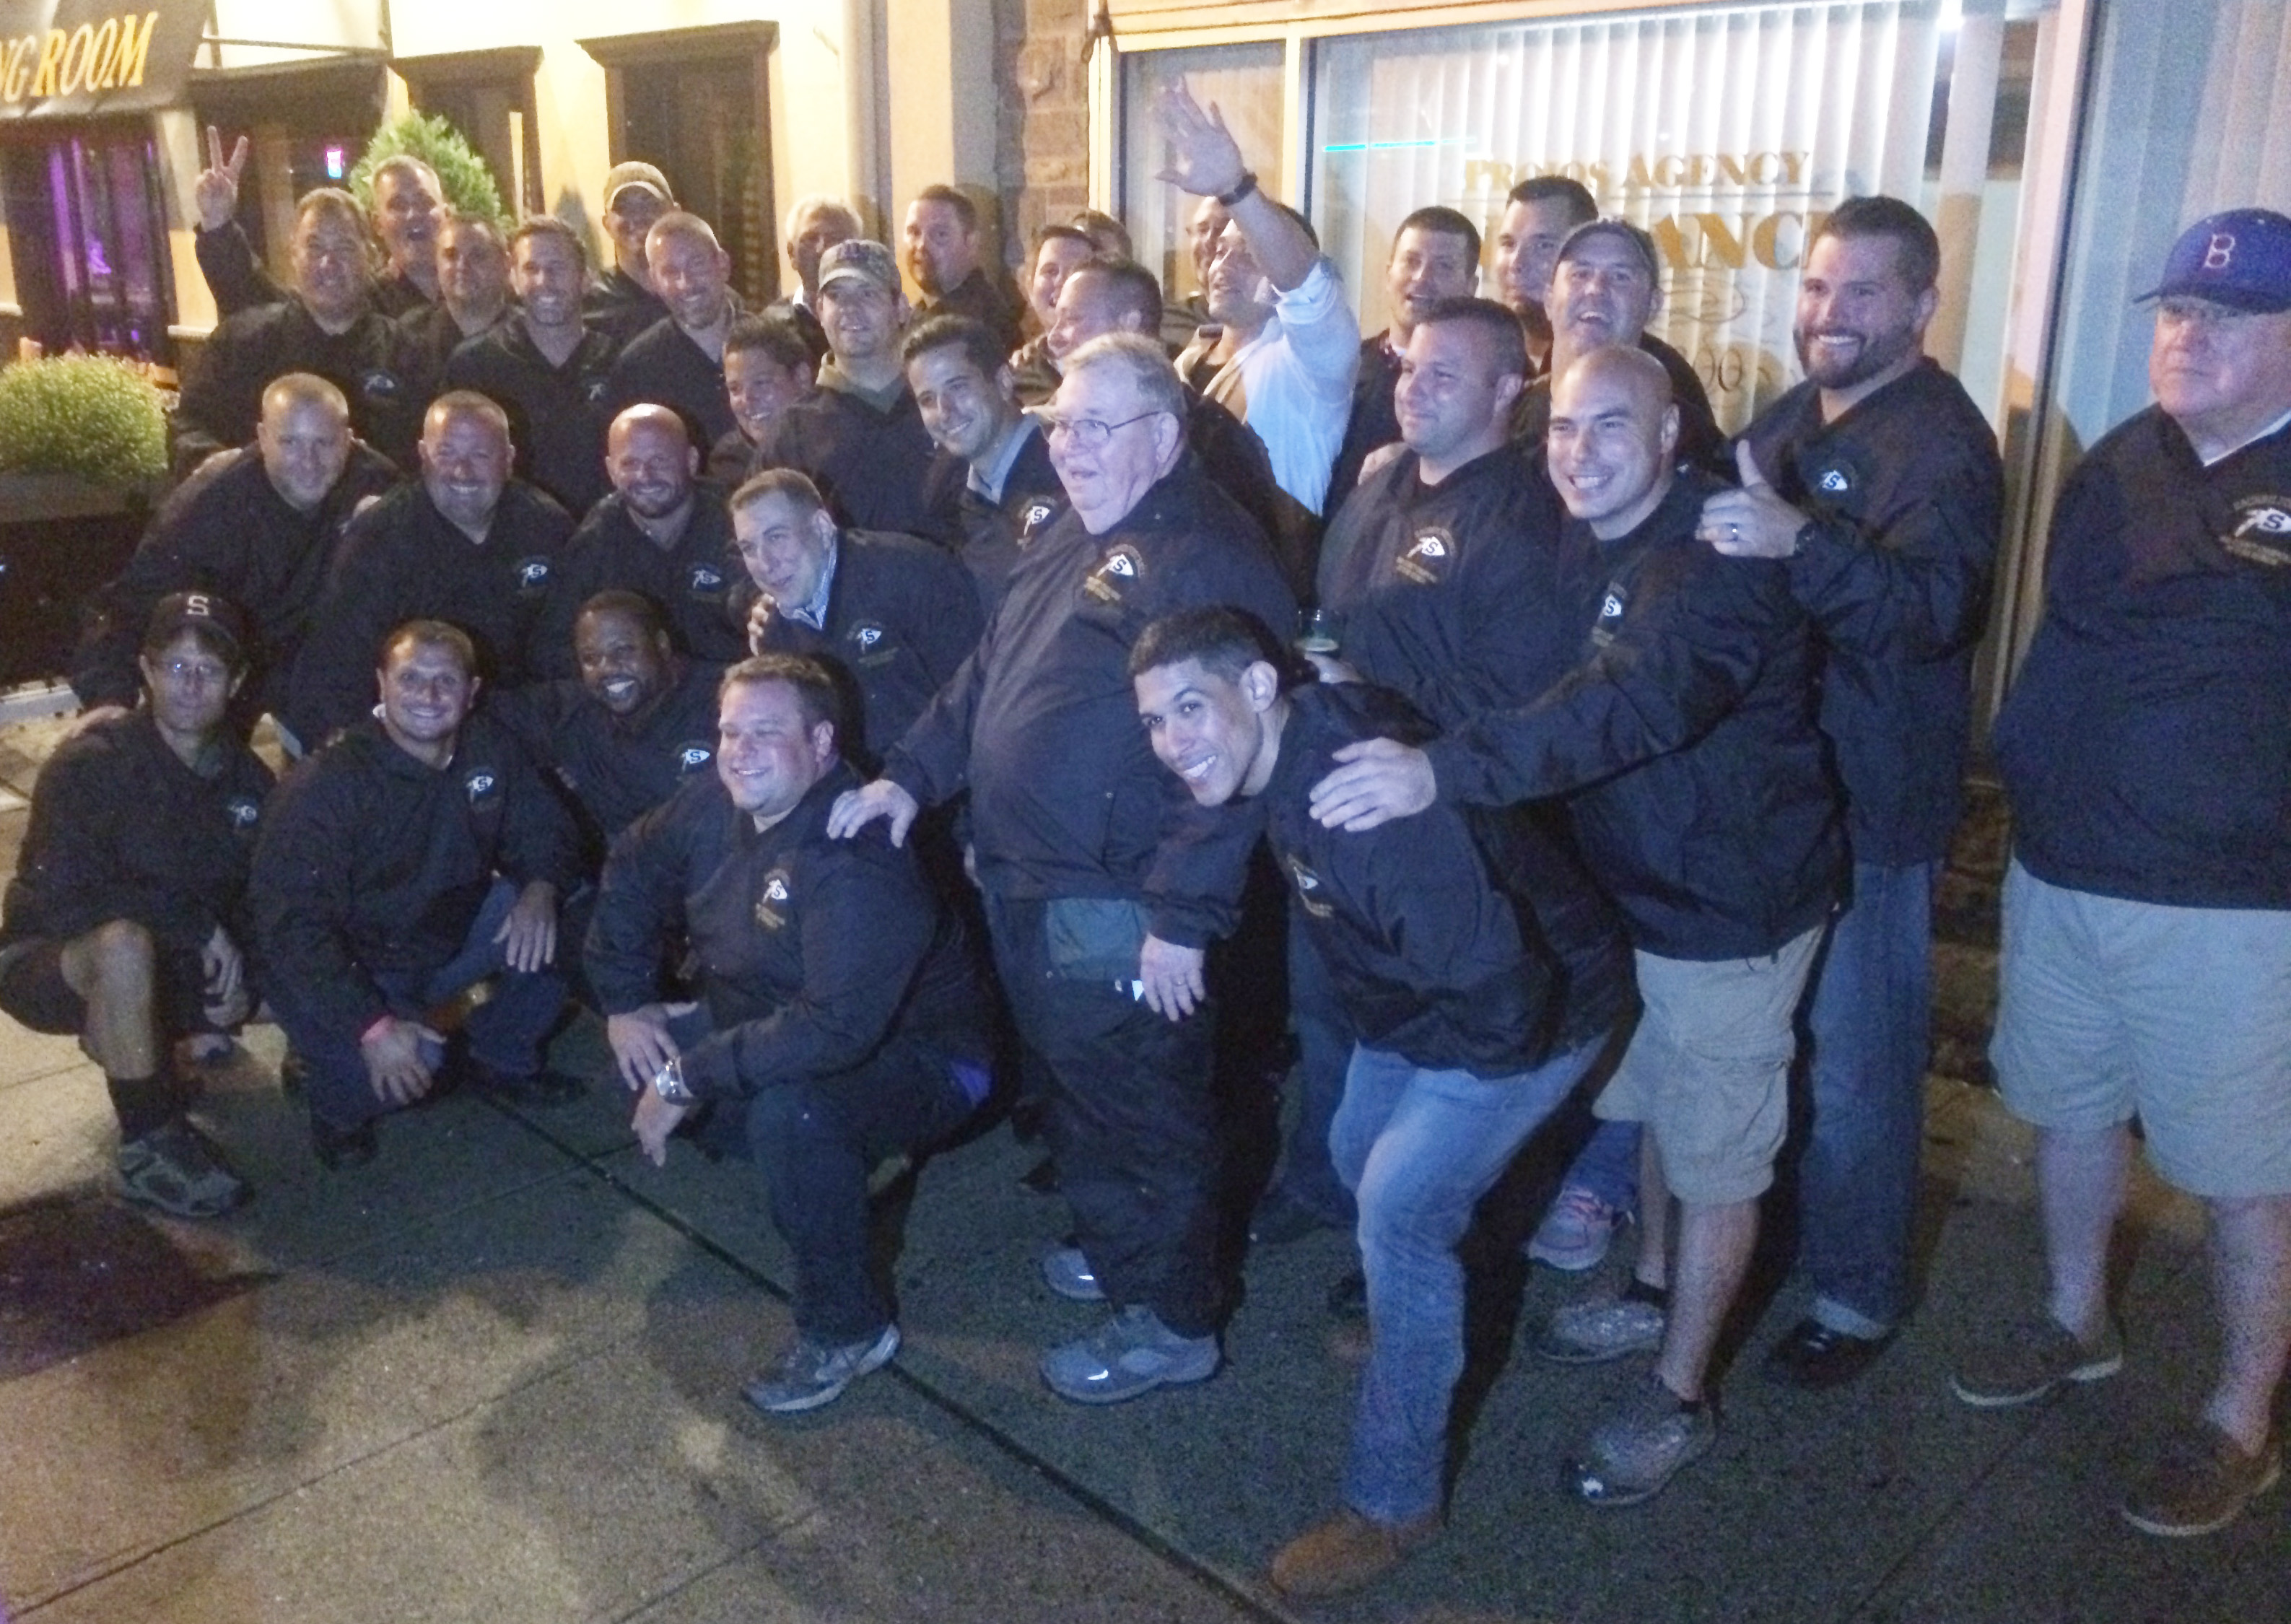 Players and coaches from the 1995 football team gathered for a 20th anniversary reunion this year.